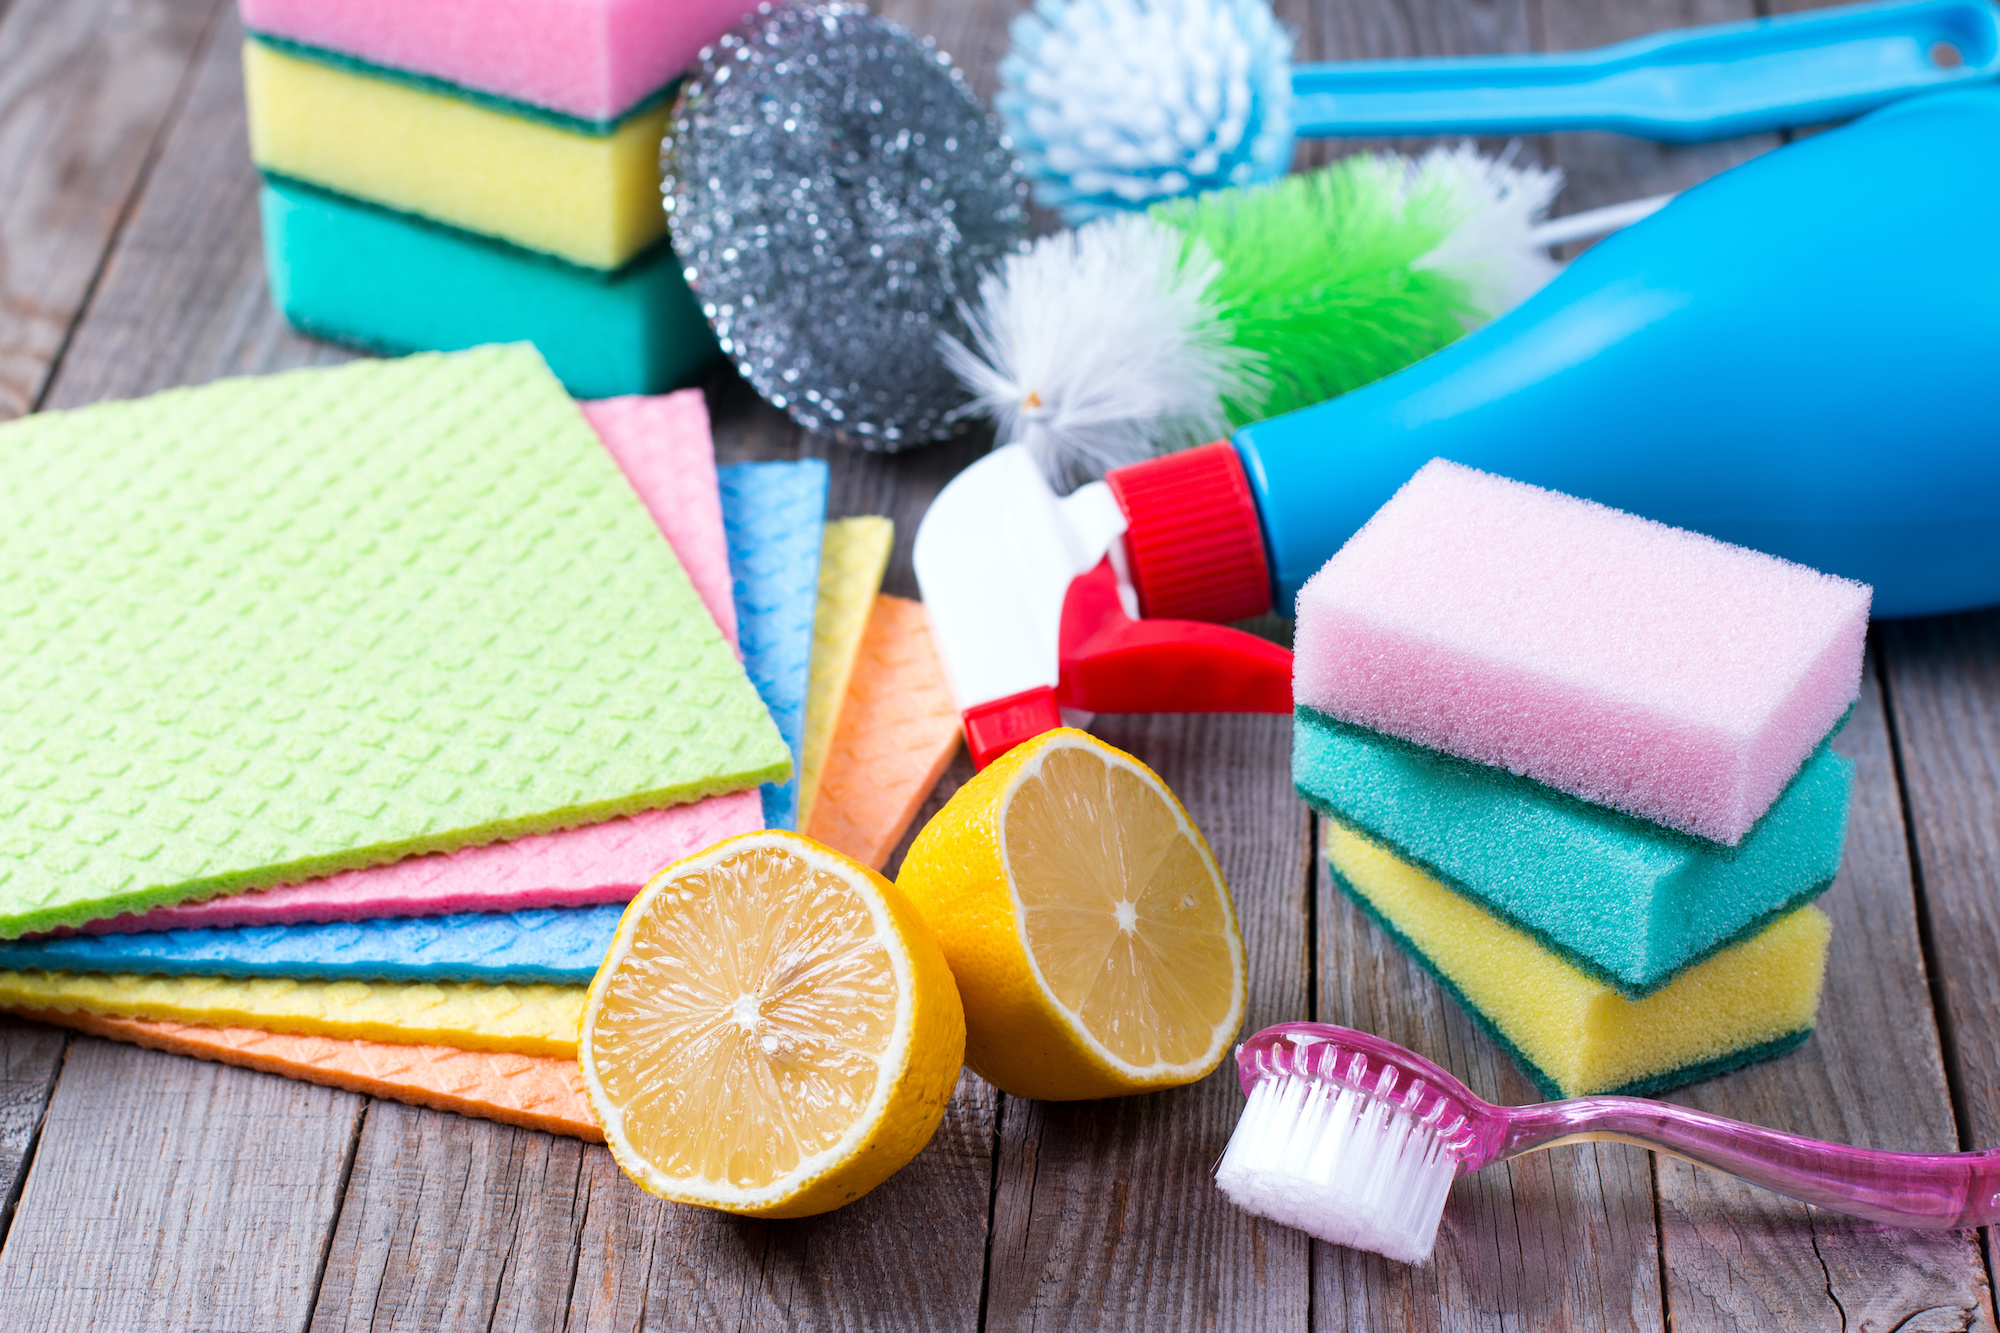 Benefits of Using Eco-friendly Cleaning Products